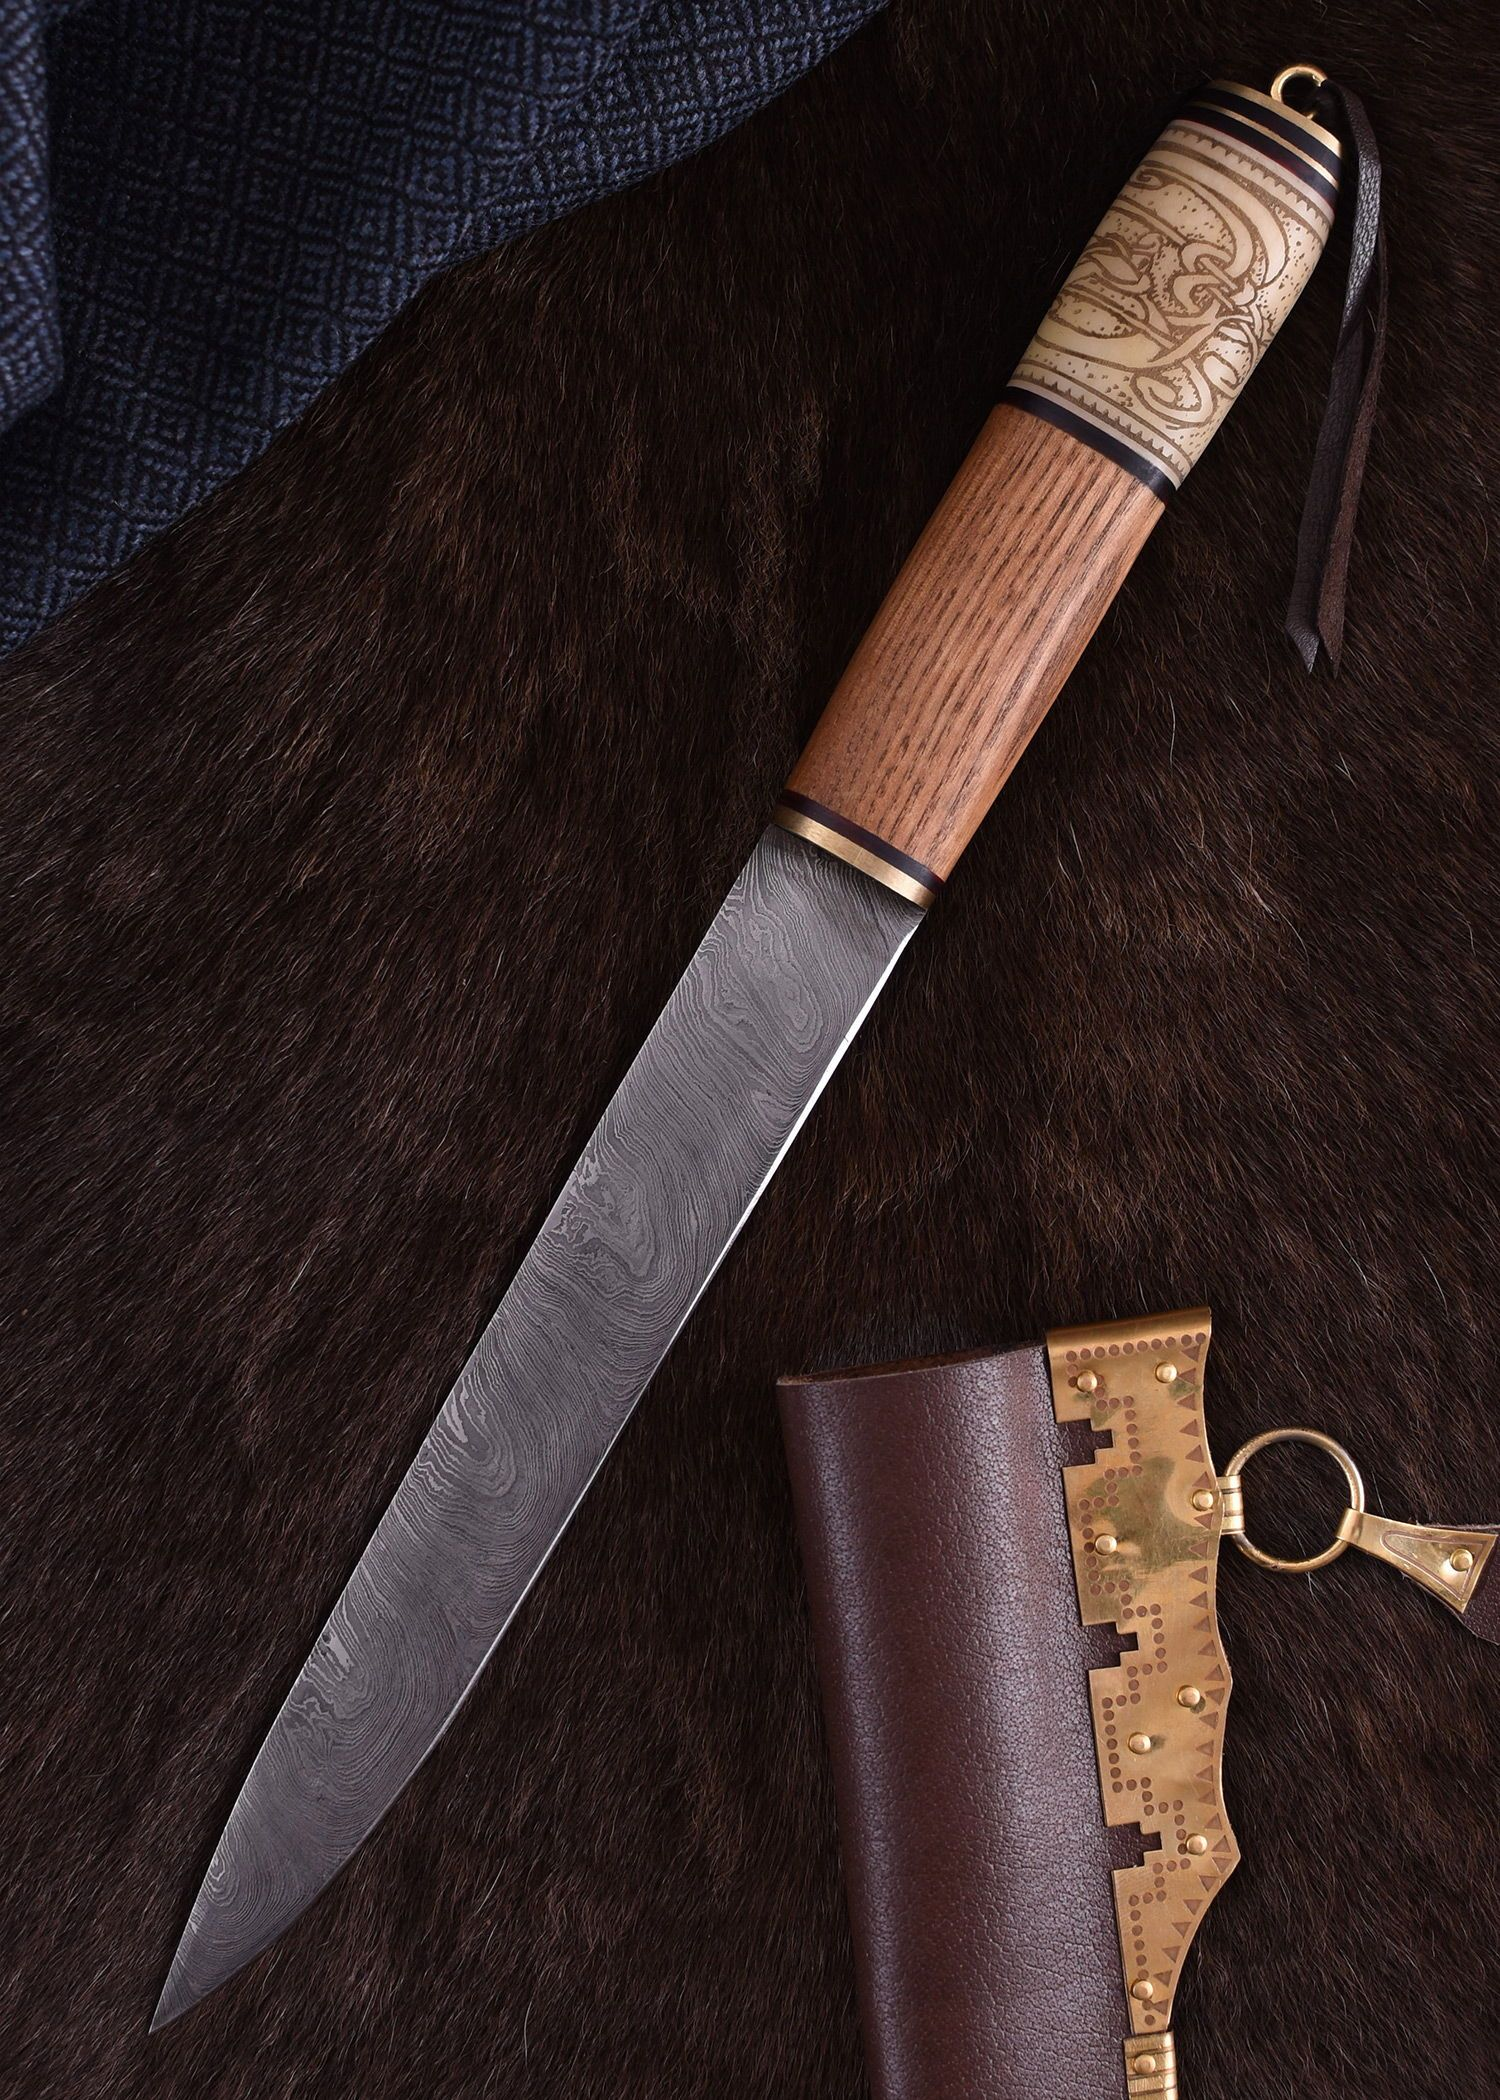 Viking Knife With Damascus Steel Blade And Wood And Bone Handle With Knot Pattern Wikinger Messer Damaststahl Holz Kno Damascus Steel Opinel Knife Knife